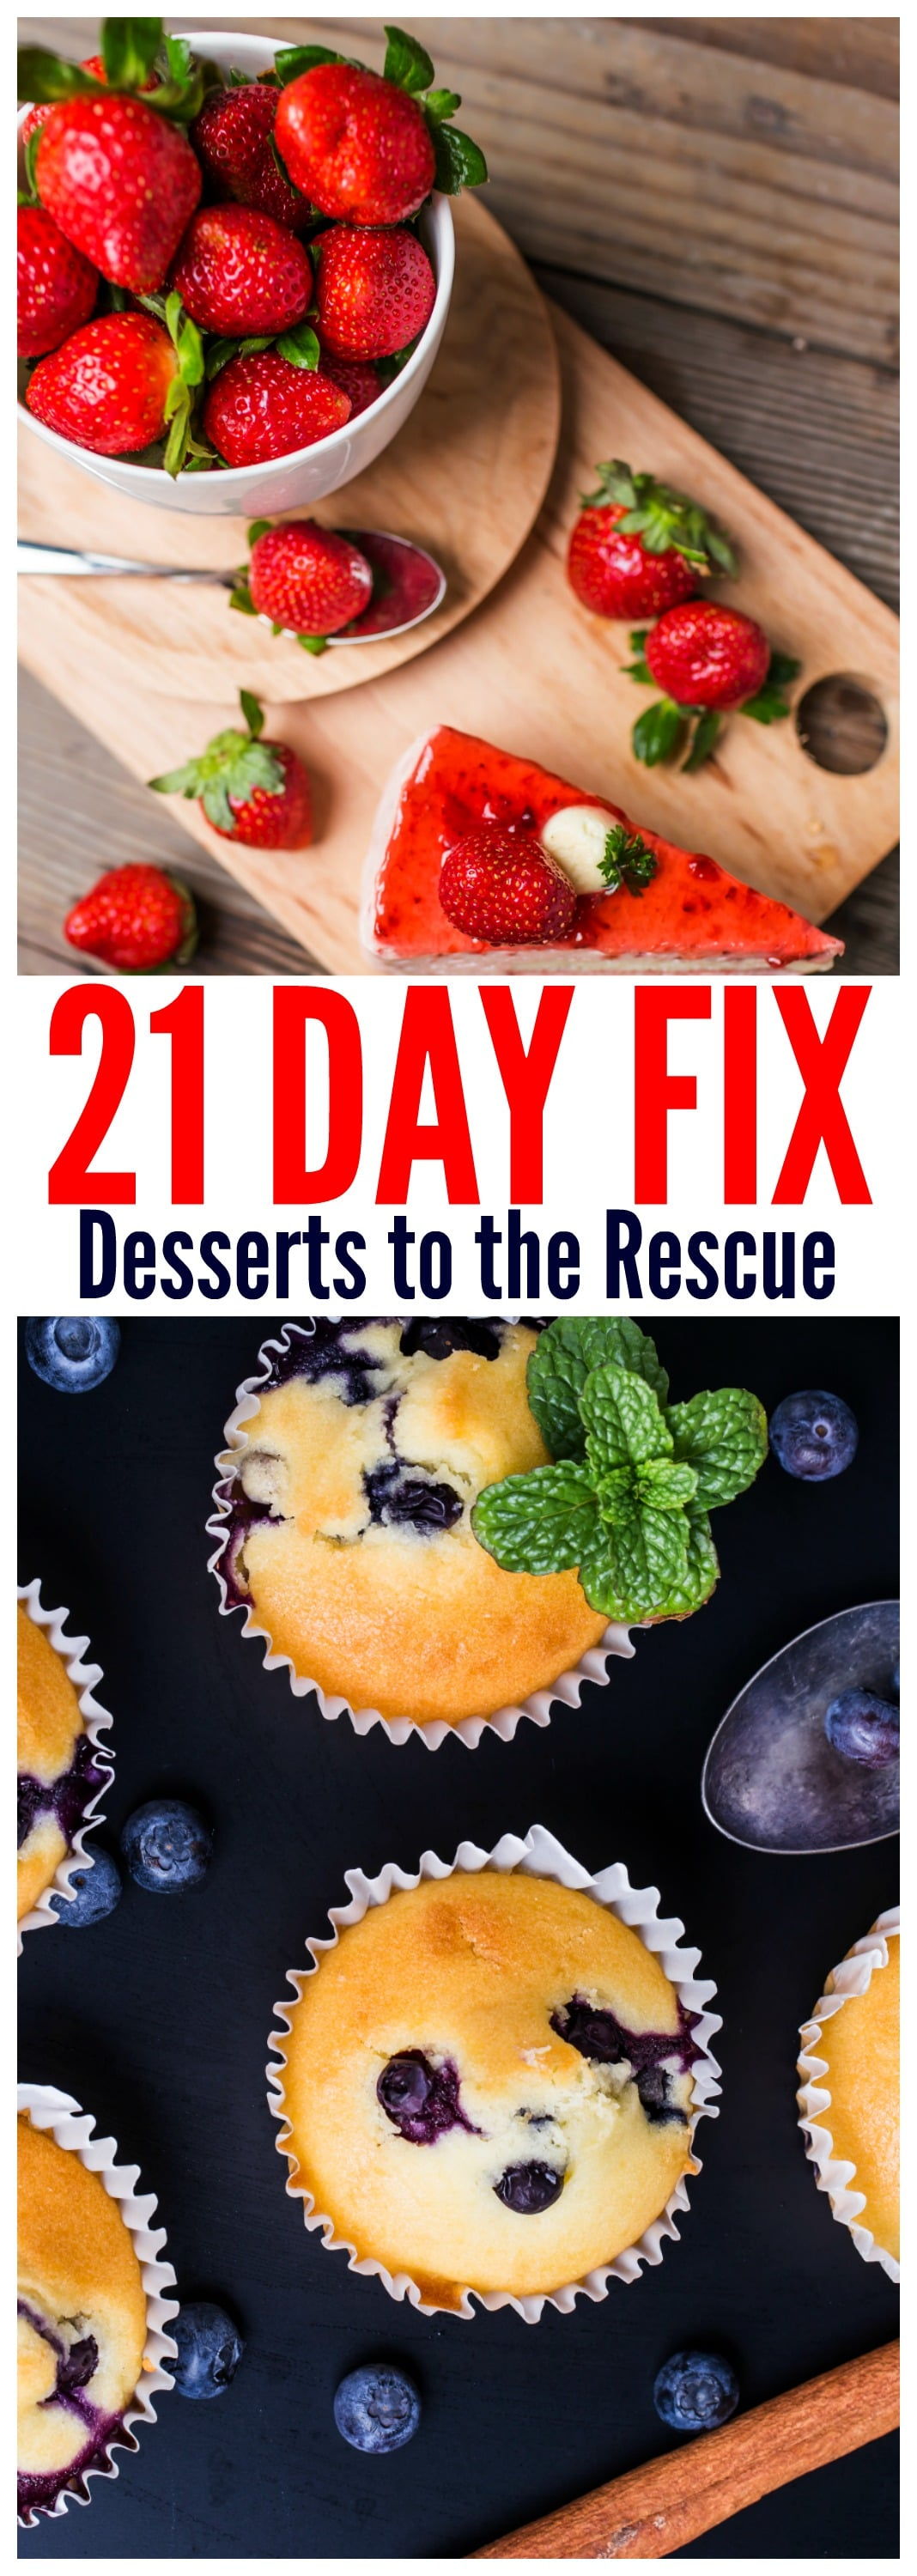 21 DAY Fix Friendly desserts to the rescue